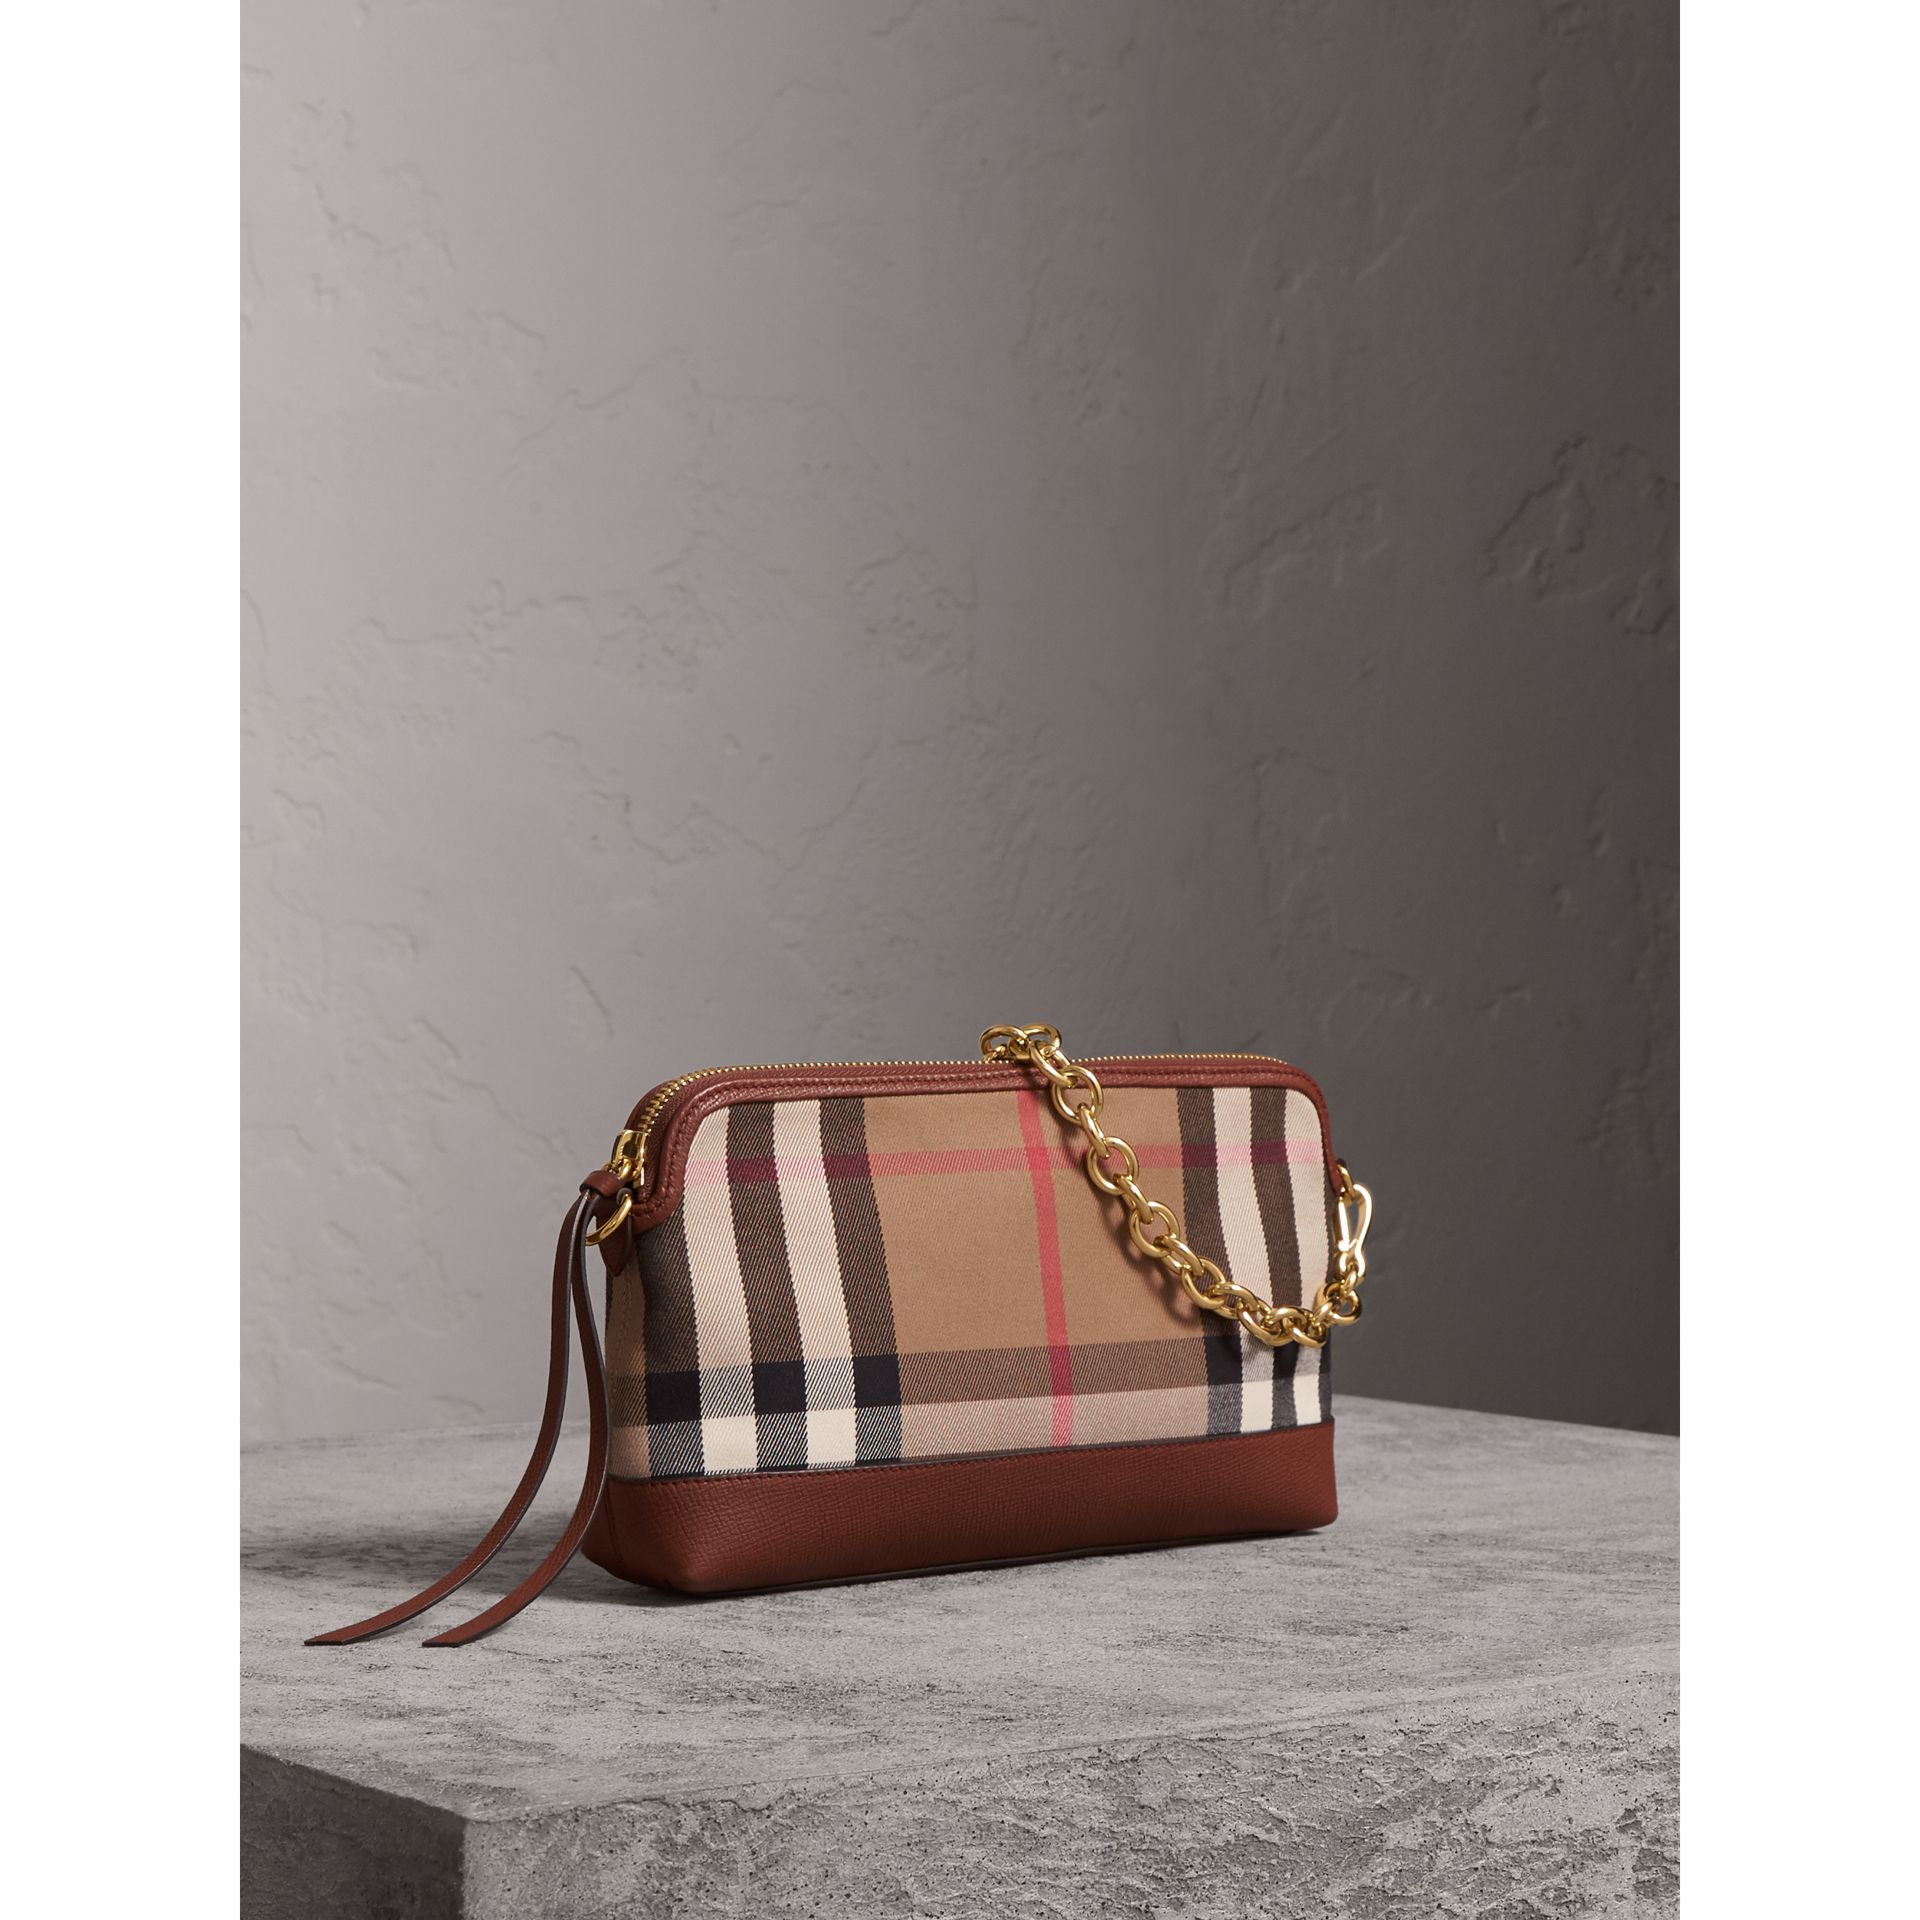 House Check and Leather Clutch Bag in Tan - Women | Burberry Canada - gallery image 8